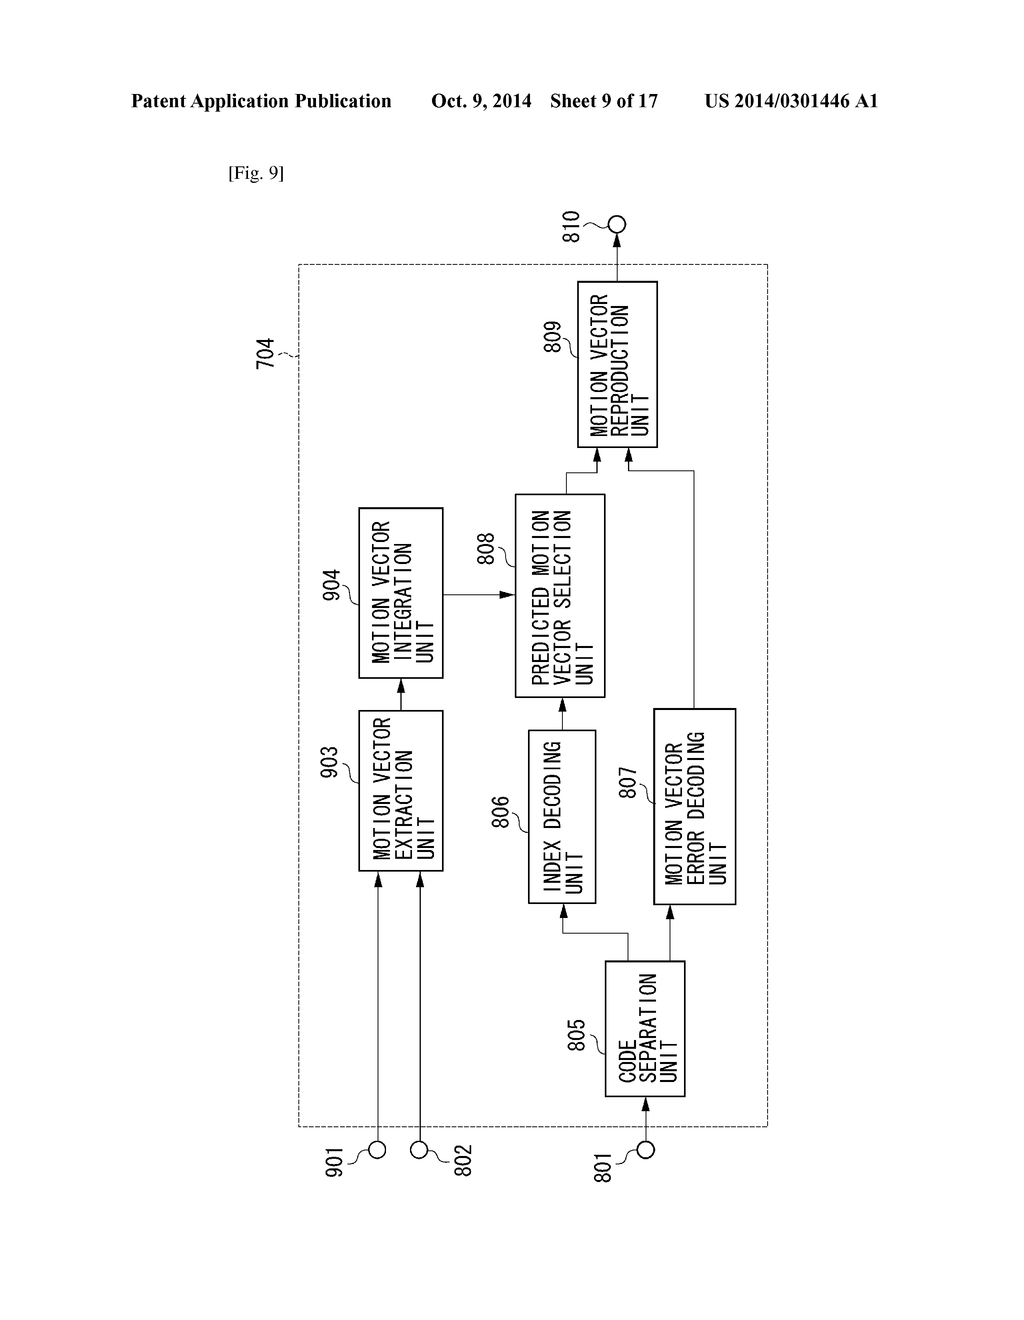 Motion vector coding apparatus method and program for coding motion motion vector coding apparatus method and program for coding motion vector motion vector decoding apparatus and method and program for decoding motion ccuart Image collections